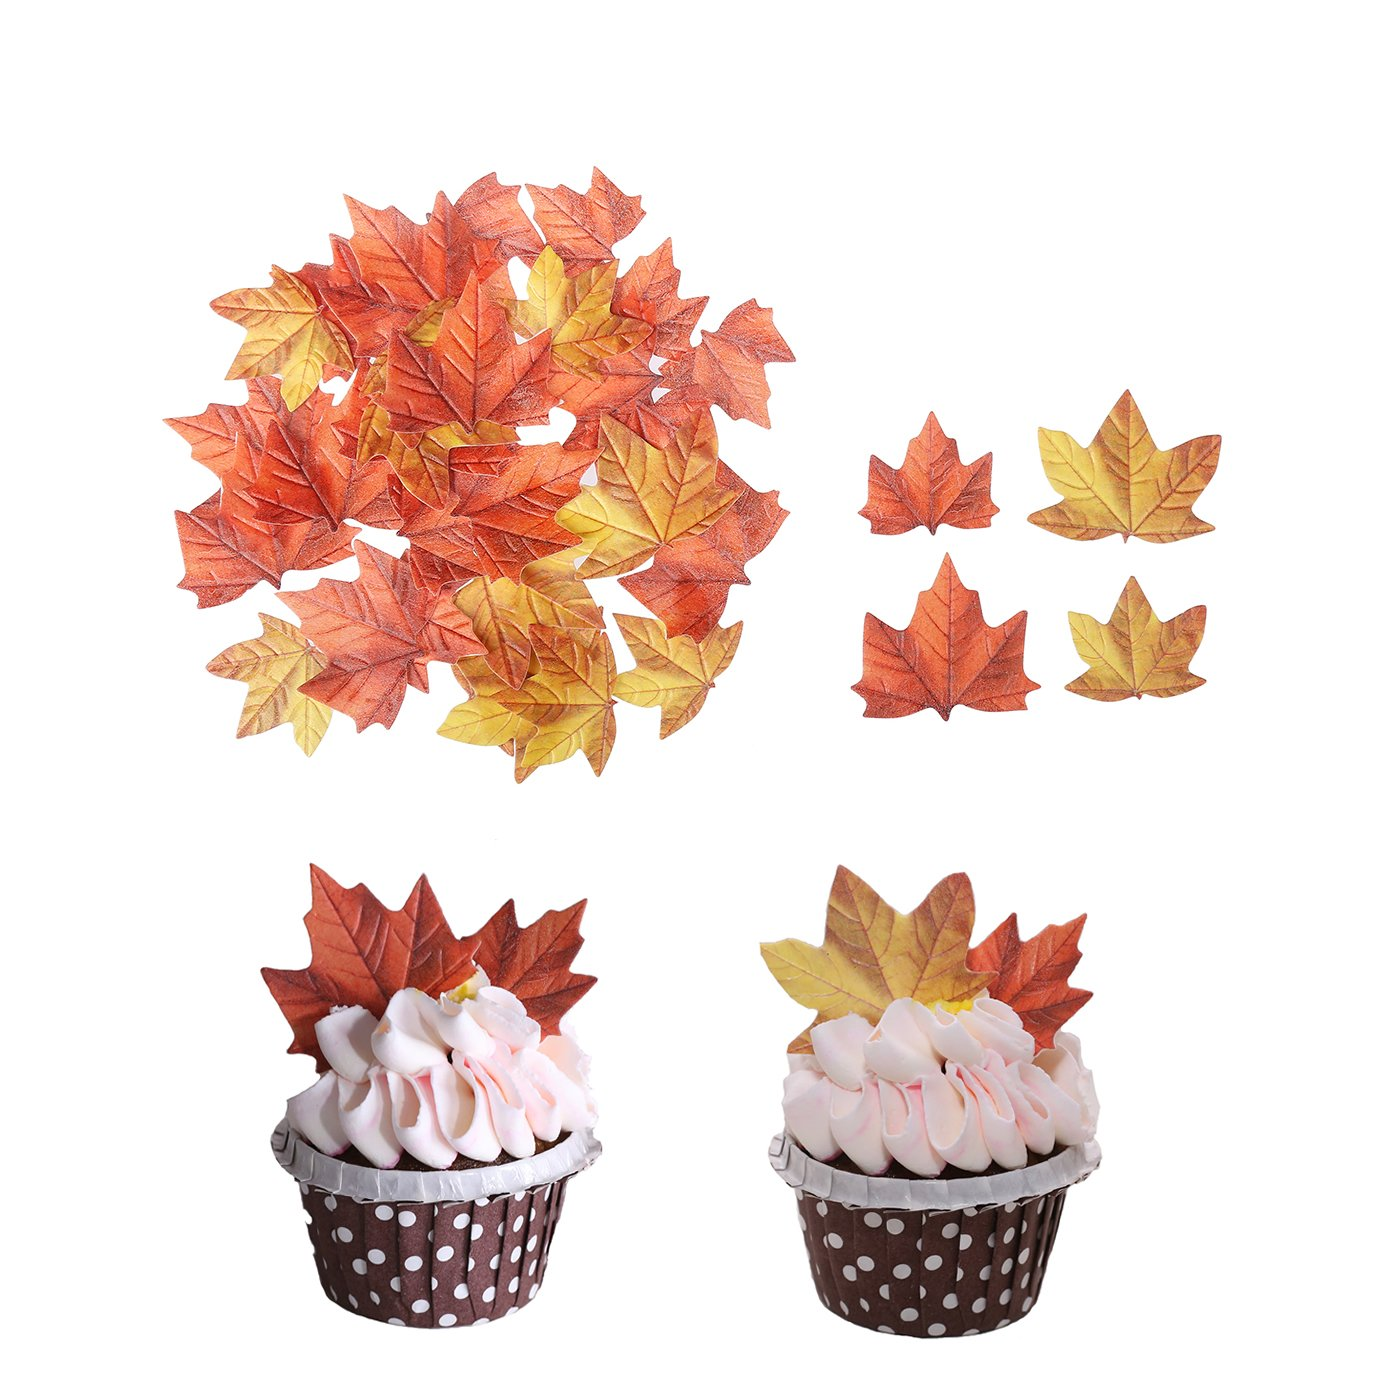 GEORLD Set of 48 Edible Fall Leaves Cake Decorations ...